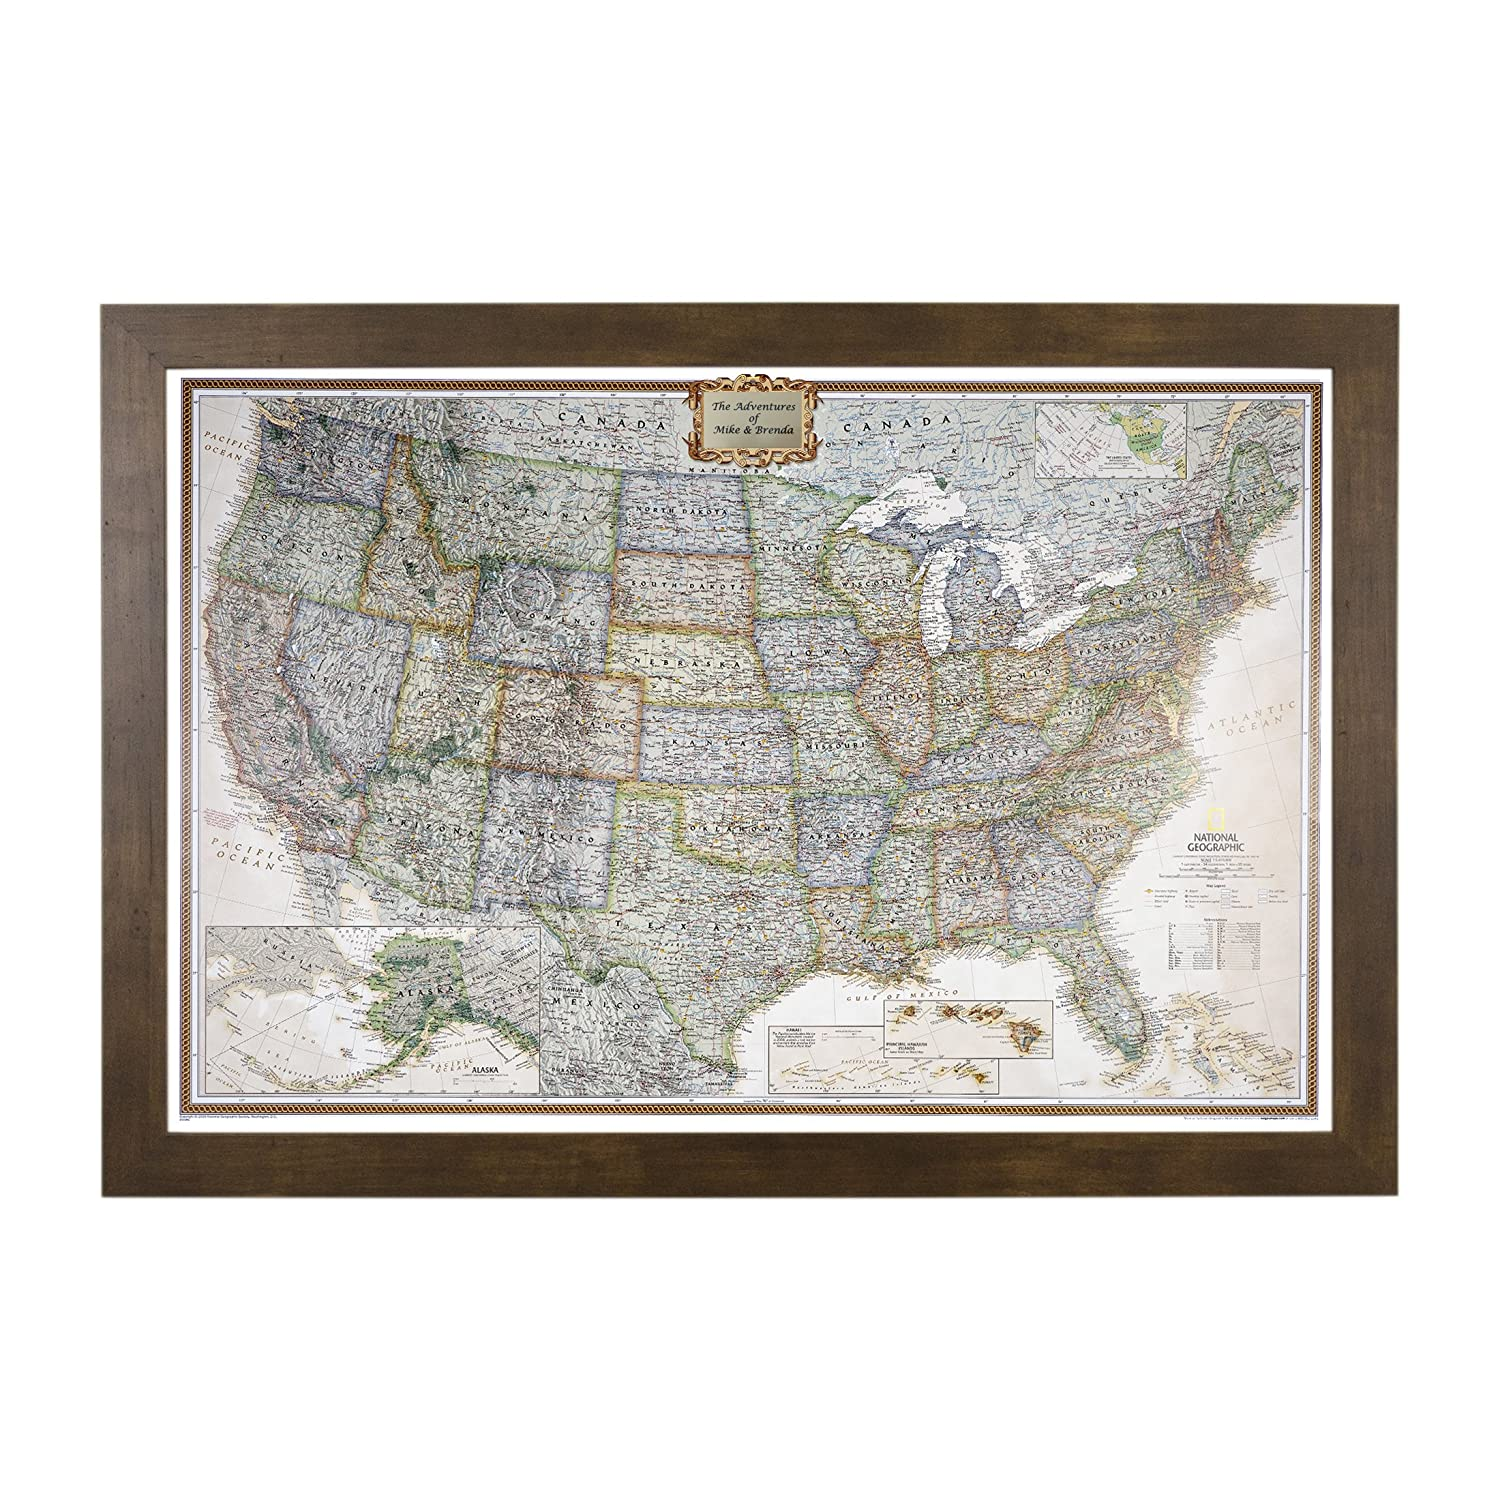 Amazon.com: Push Pin Travel Maps Personalized Executive US with ...